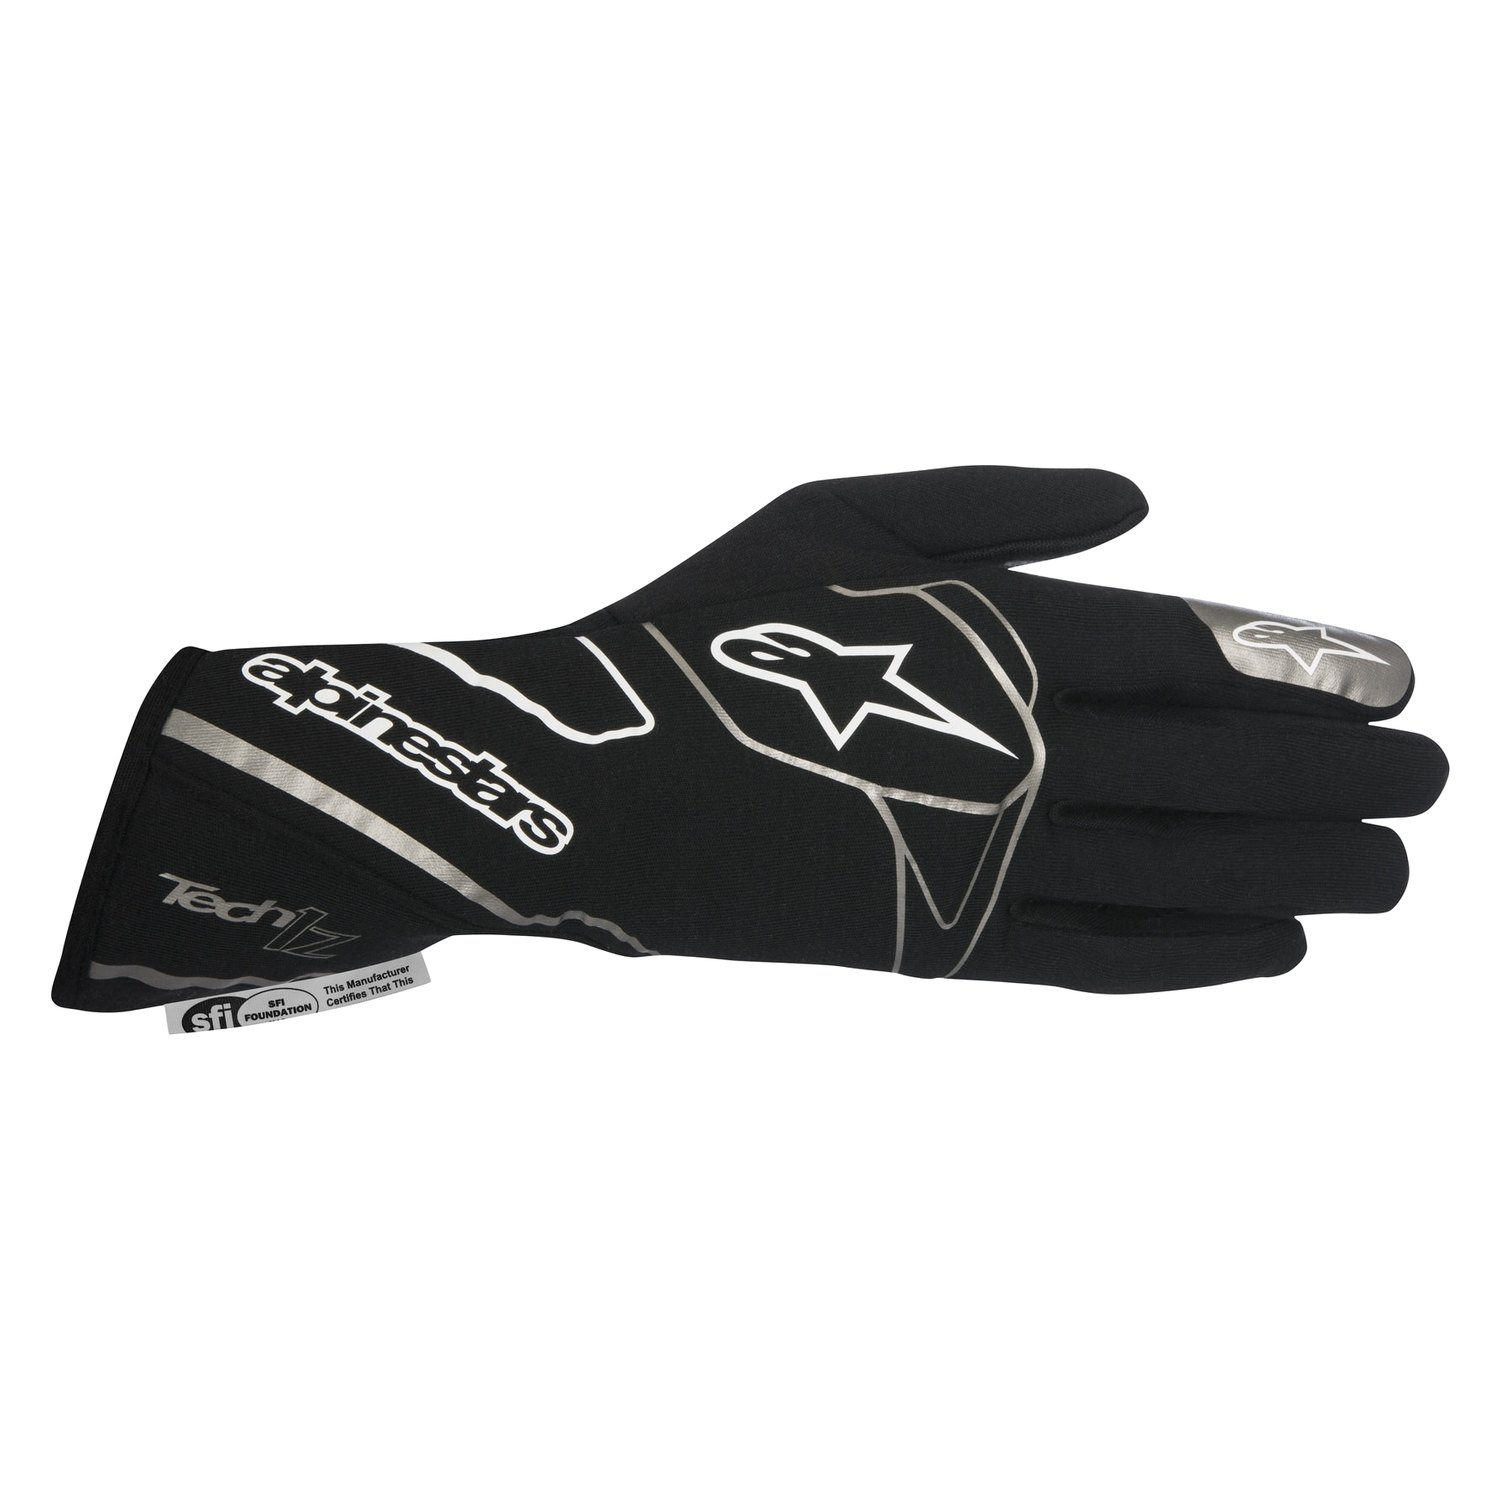 c5352af151a ... Tech 1-ZX 2X-Large Anthracite Black Red GlovesAlpinestars® - Tech 1-ZX  2X-Large Black Blue GlovesAlpinestars® - Tech 1-ZX 2X-Large Navy White Red  Gloves